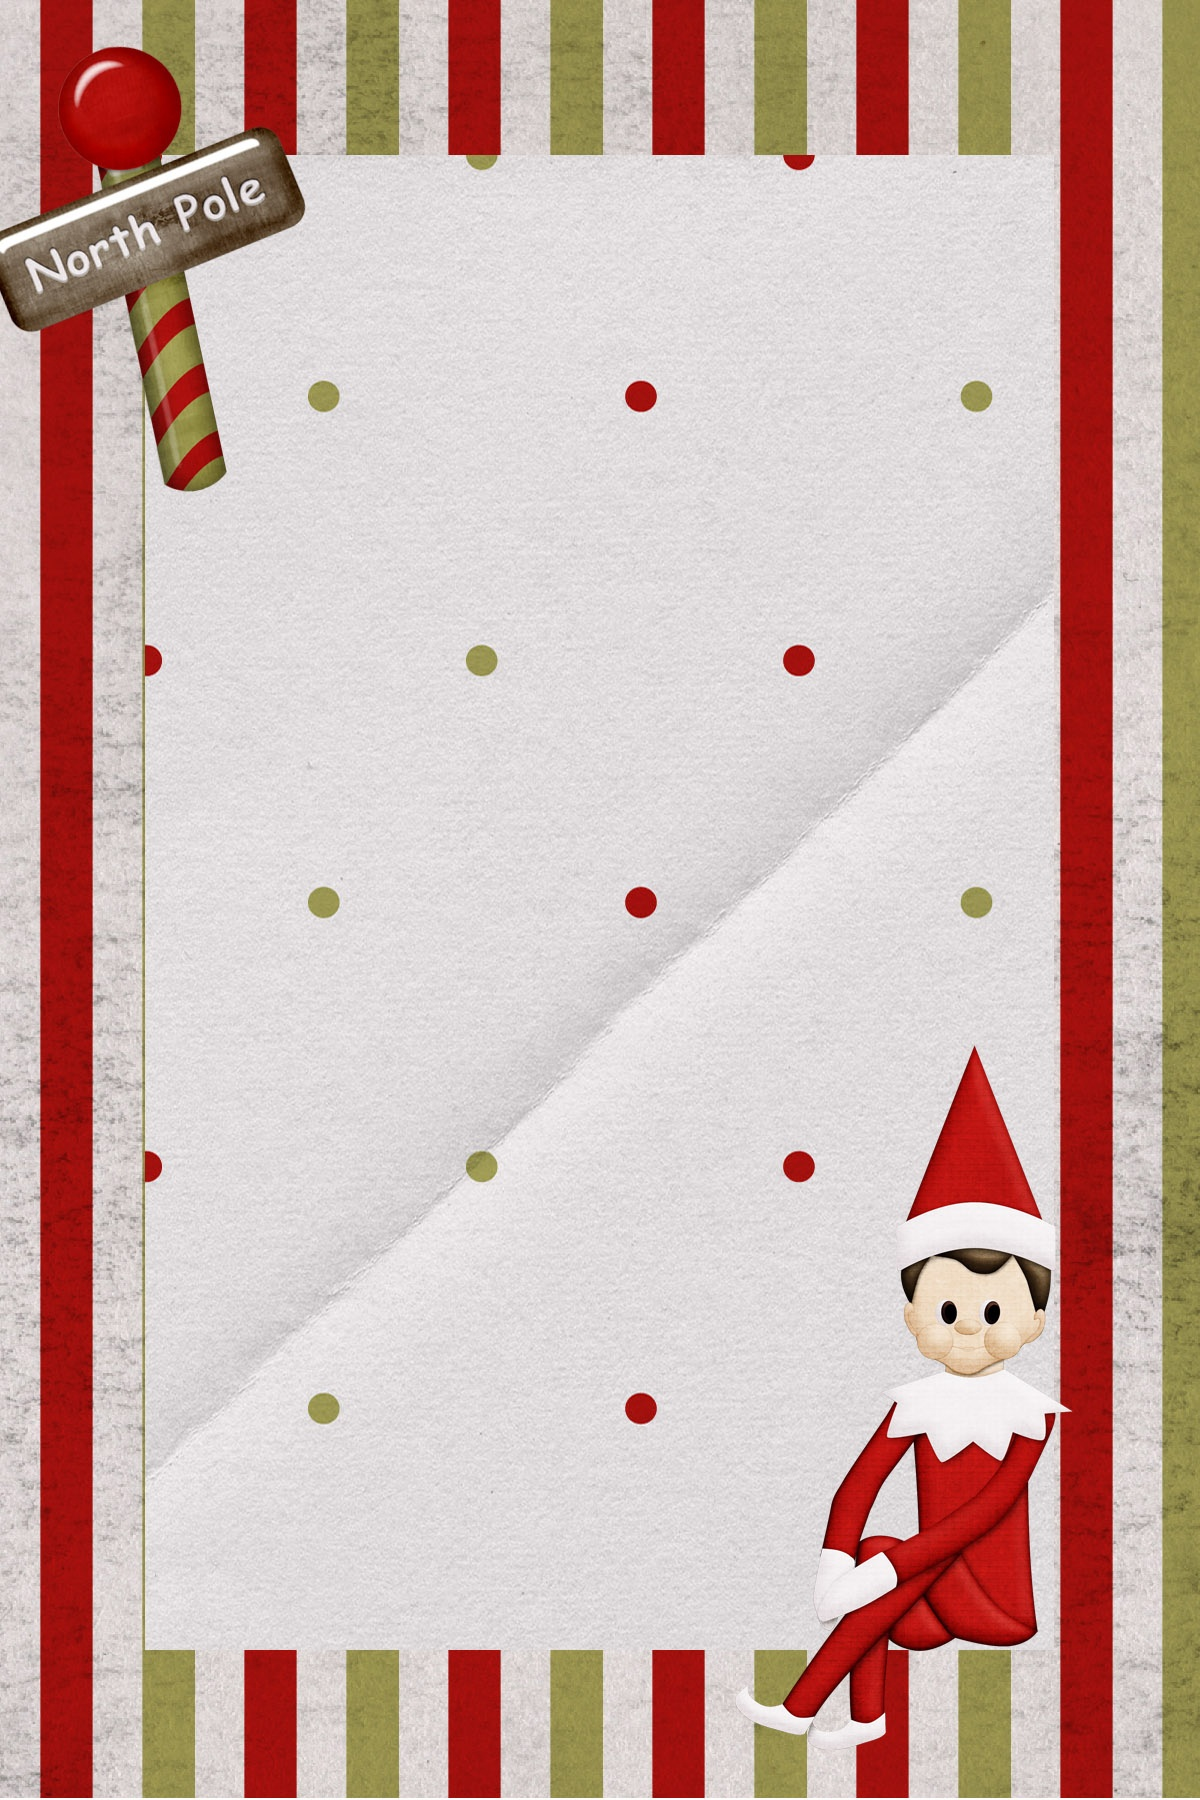 Super Cute Free Downloadable Elf On The Shelf Note. Customize - Free Printable Elf Stationery